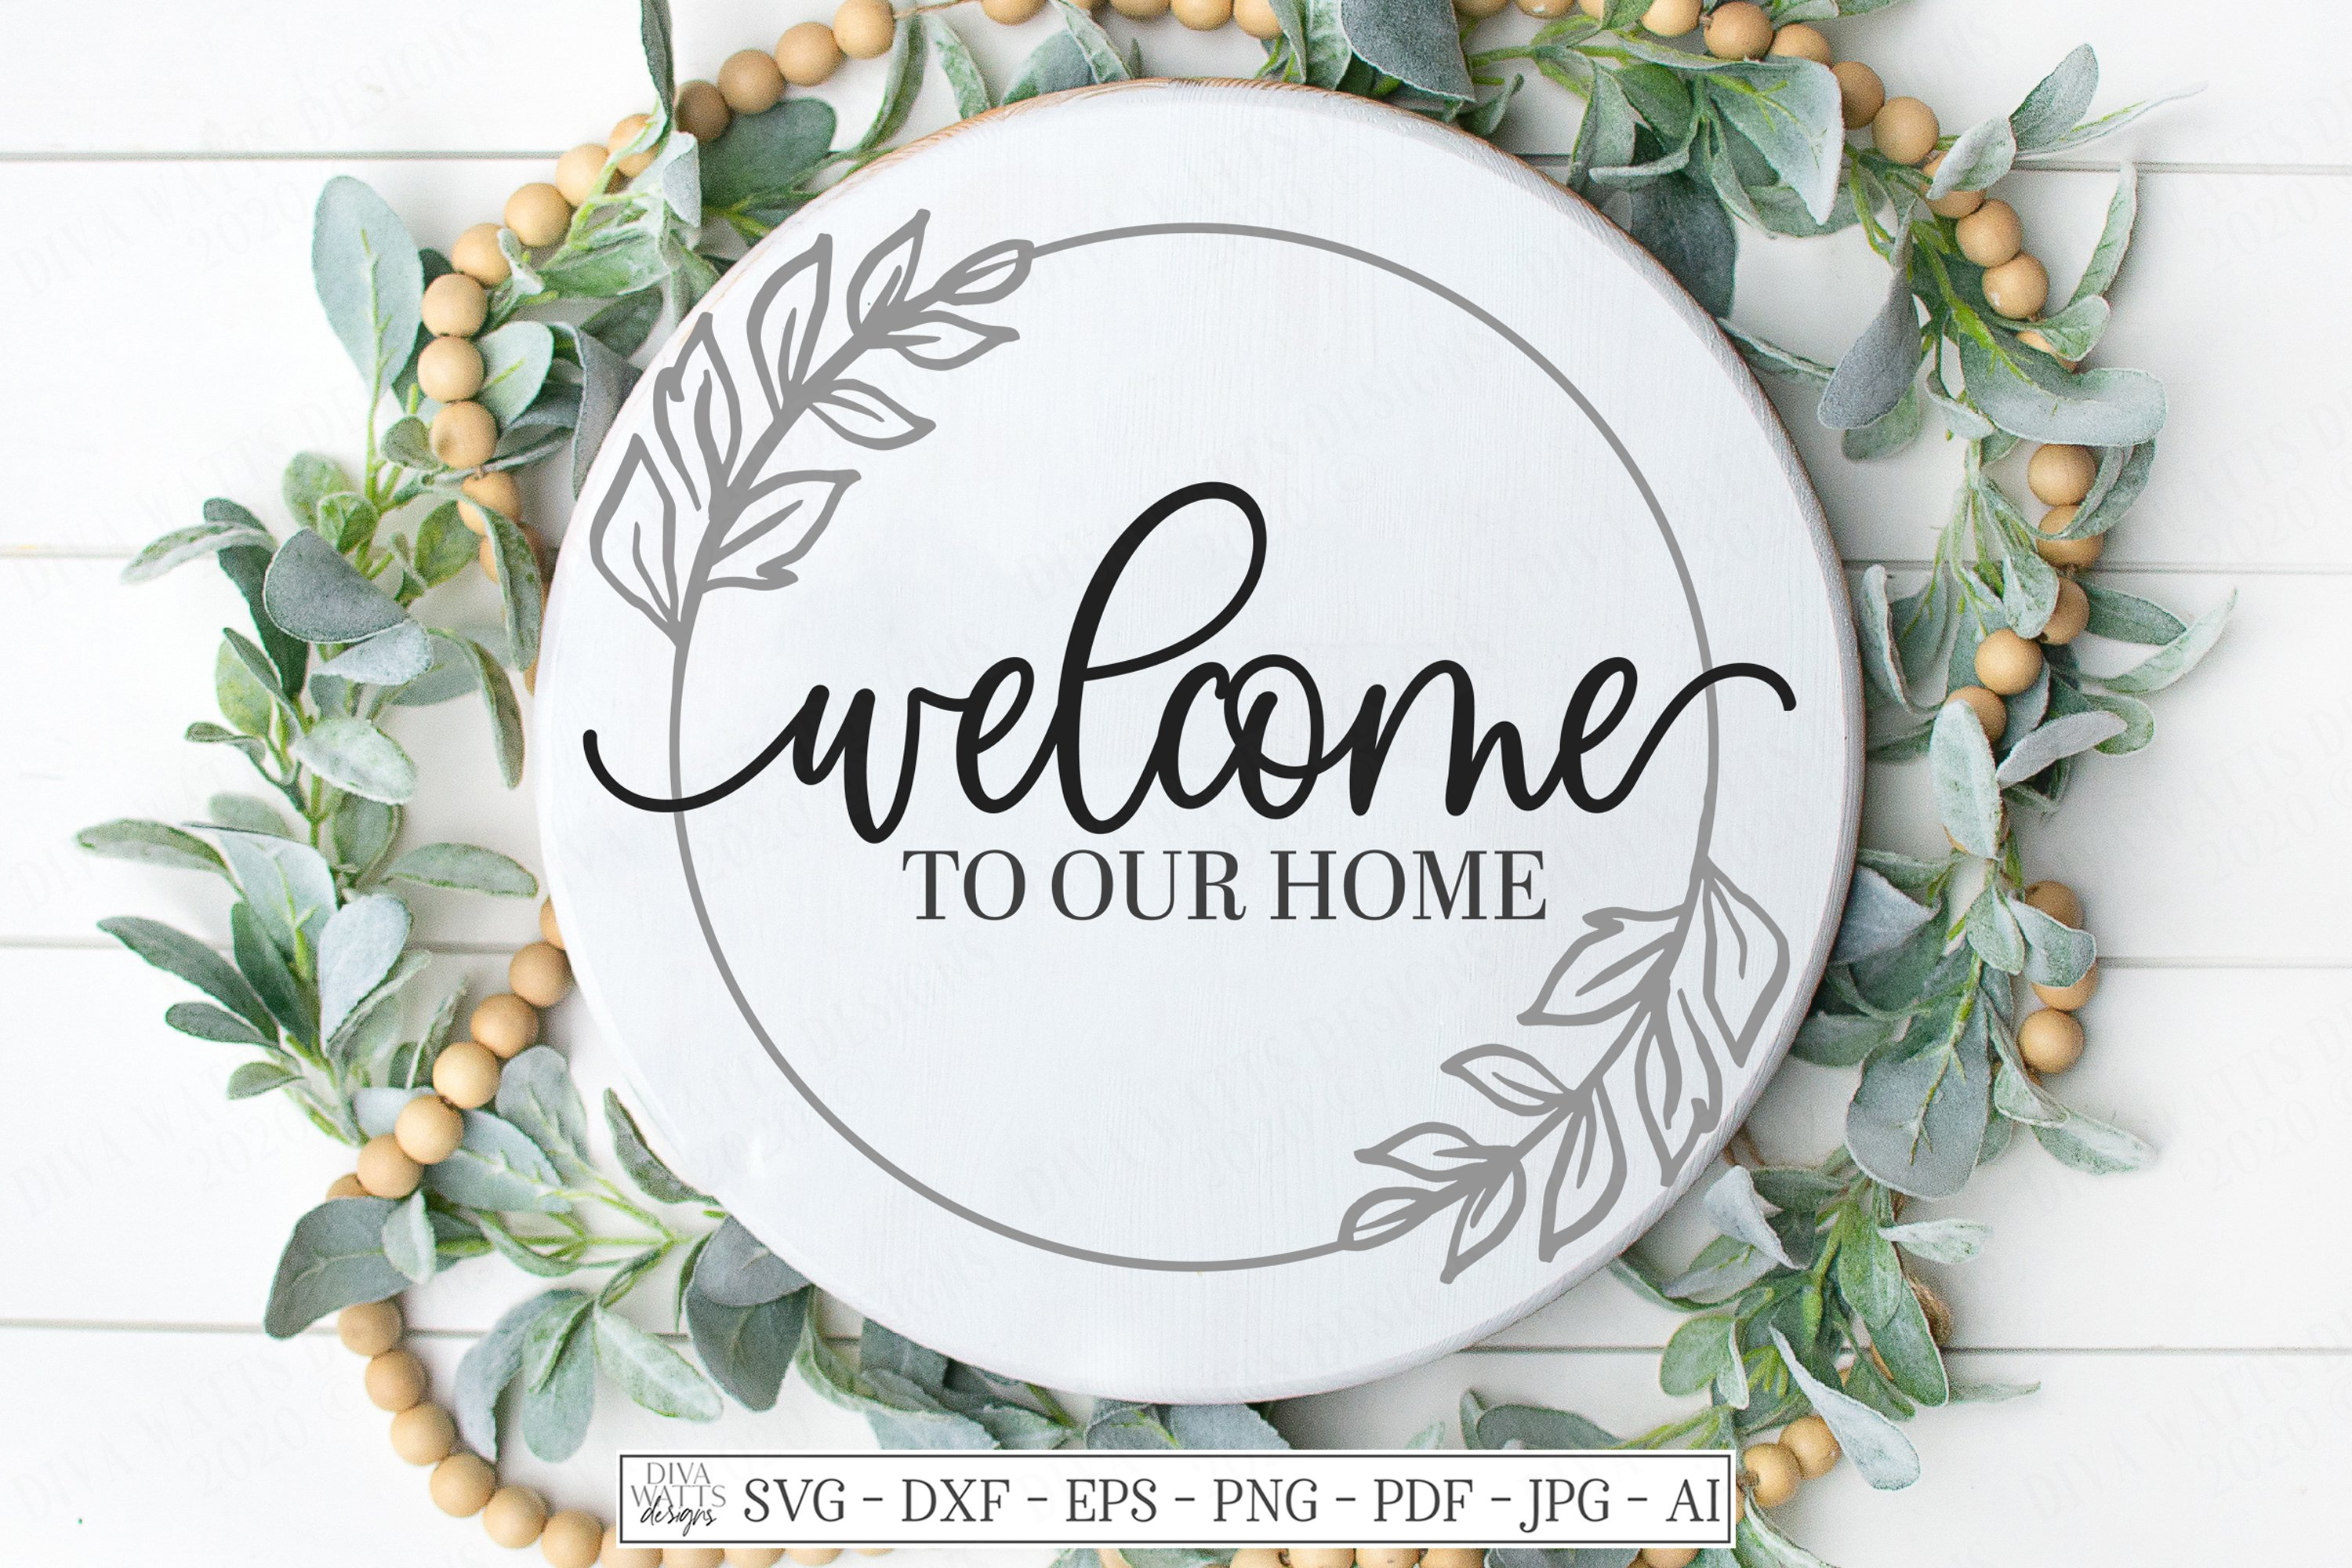 Welcome To Our Home Farmhouse Wreath Svg Dxf Eps Sign 557360 Cut Files Design Bundles